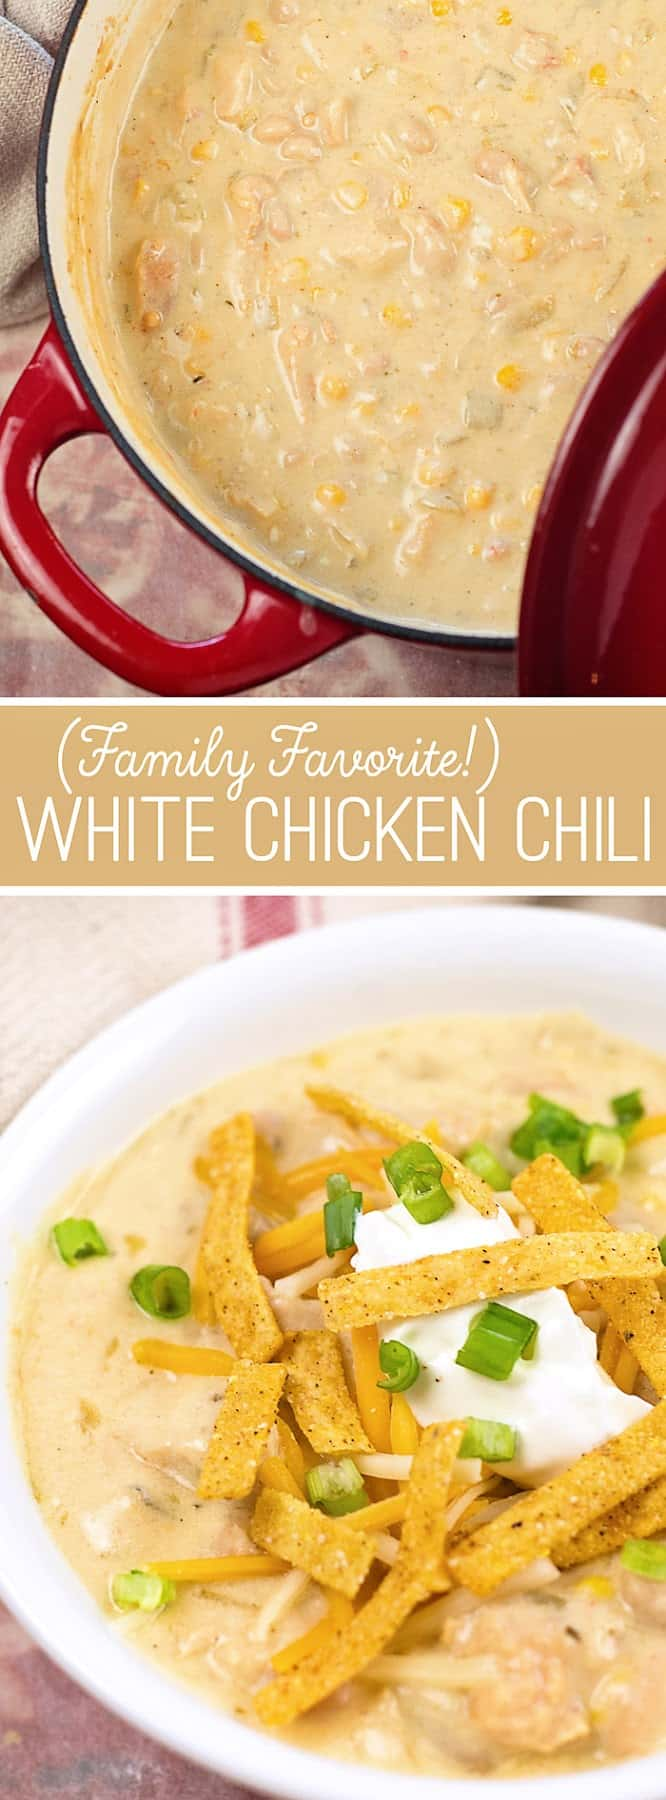 Family favorite White Chicken Chili recipe- loaded with beans, chicken, tex-mex flavors and tons of creamy goodness!